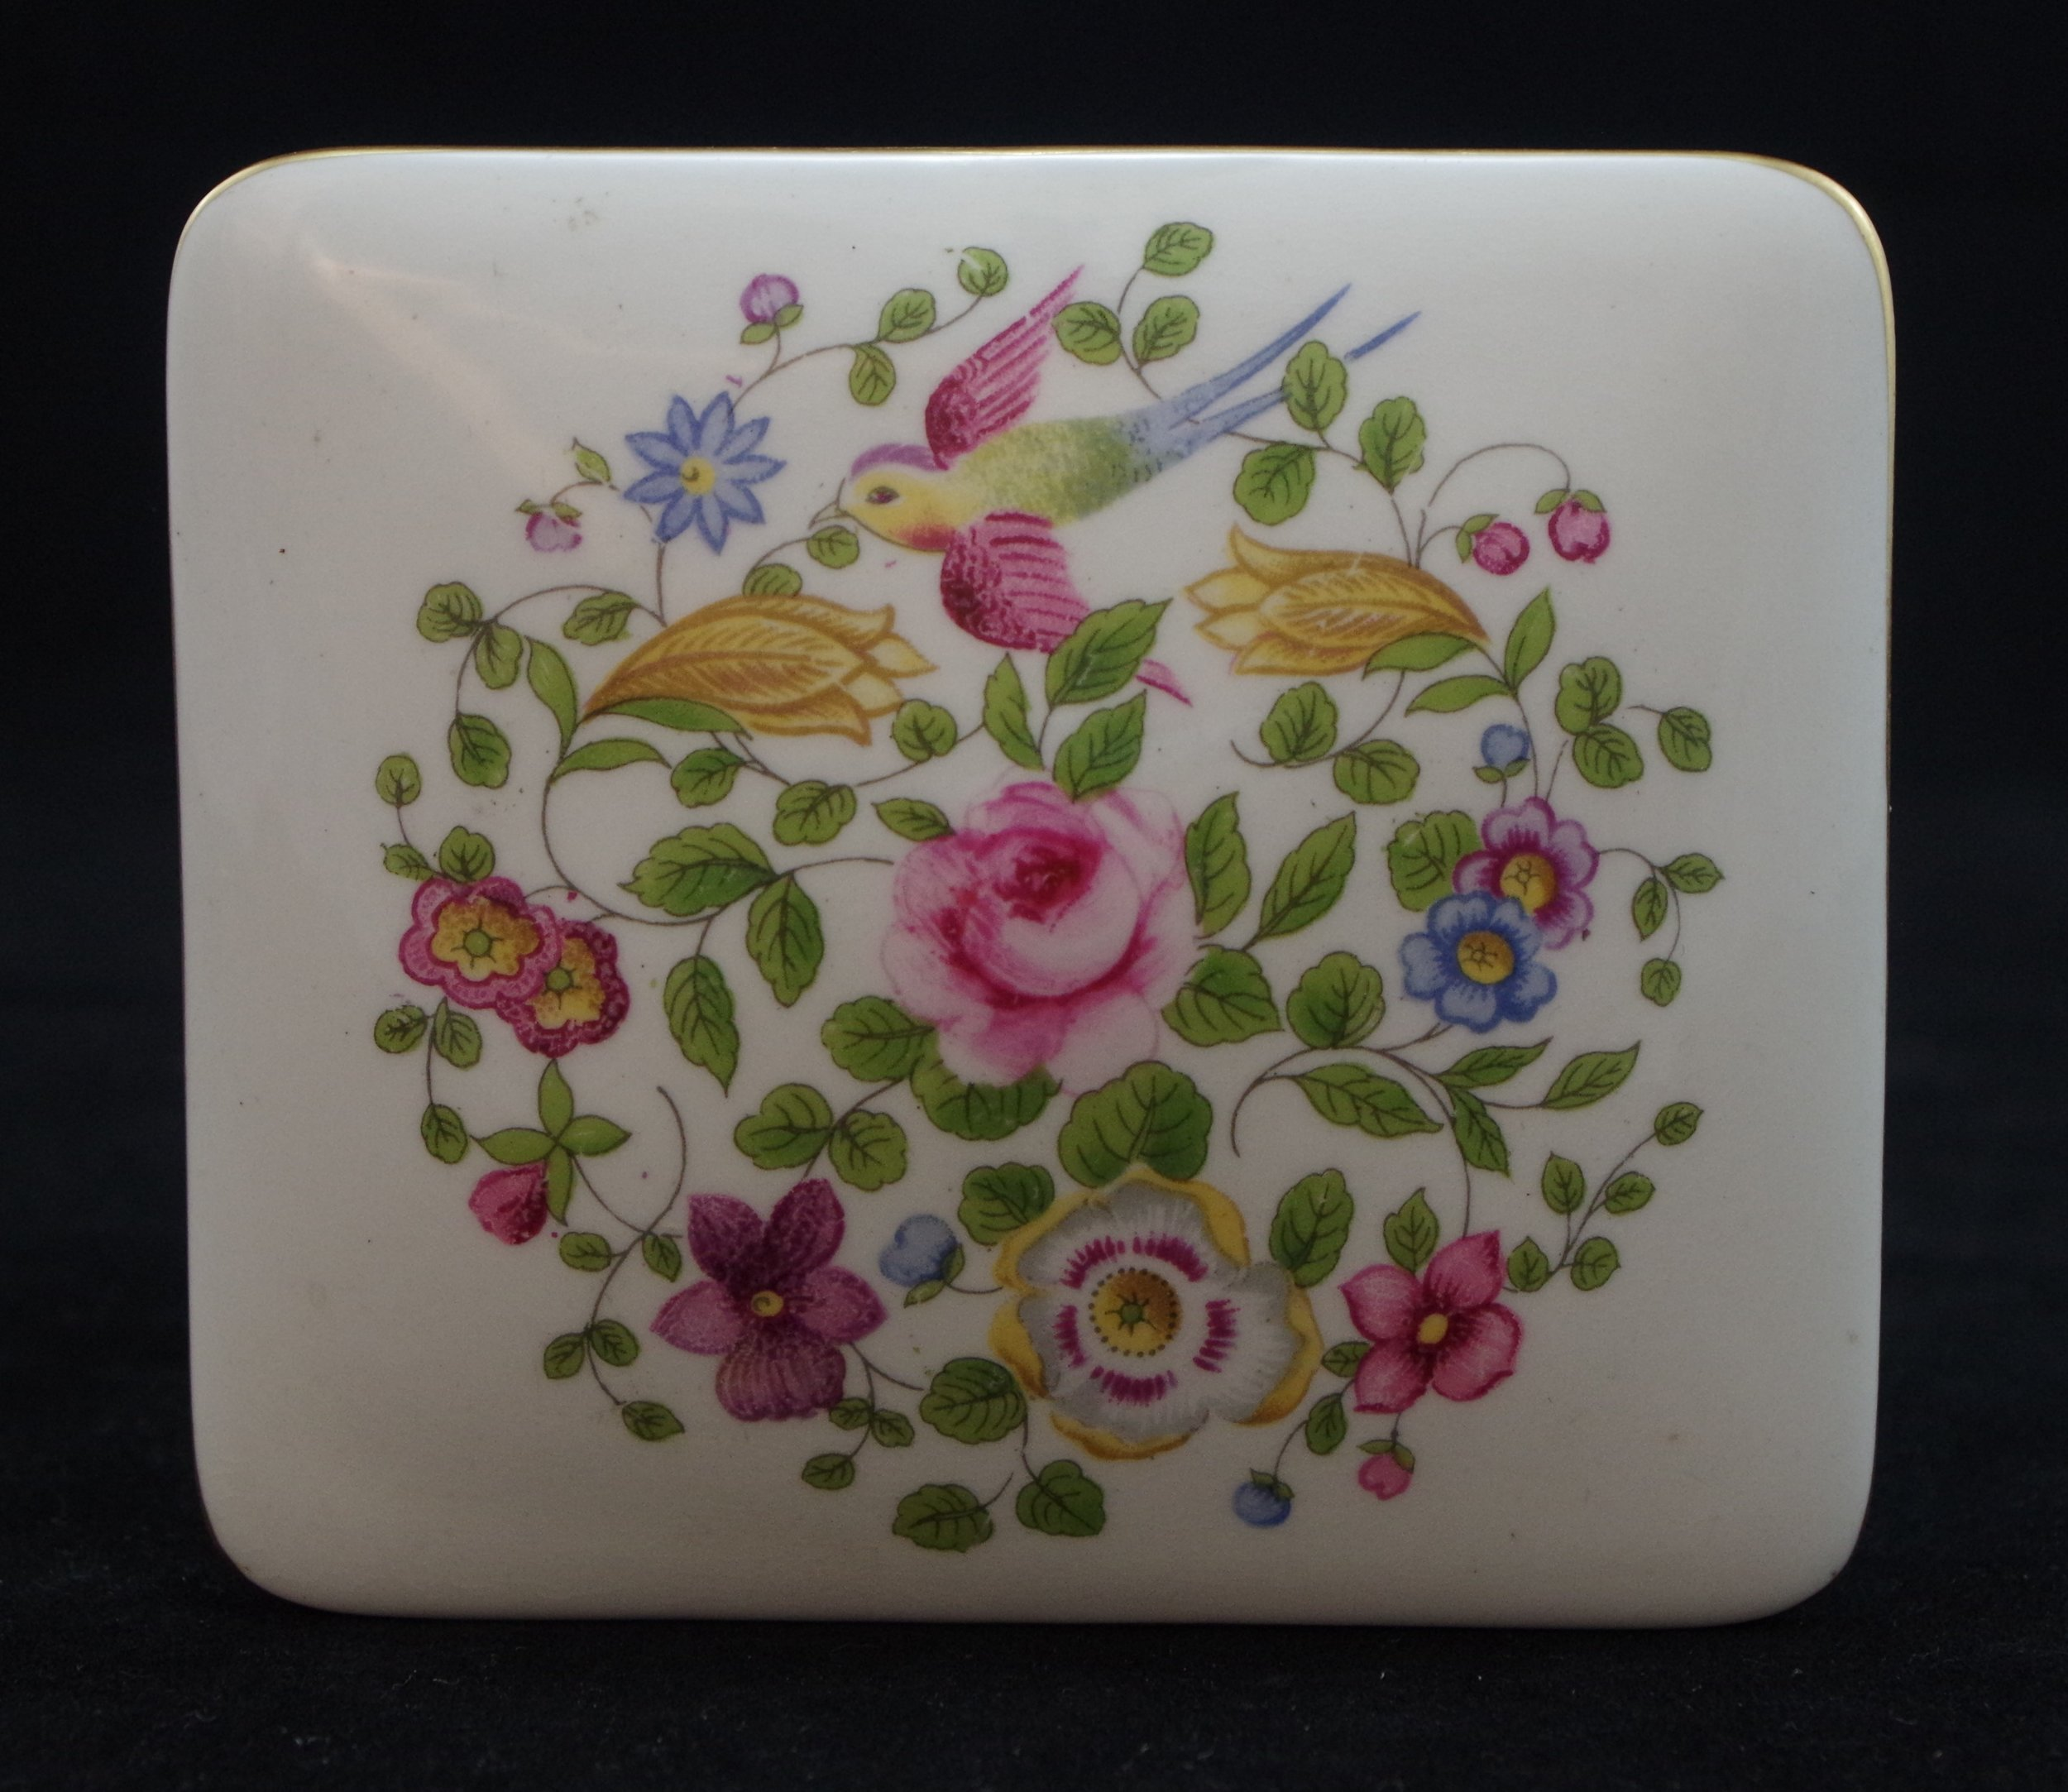 royal-crown-derby-oblong-cigarette-box-shape-1920-cotswold